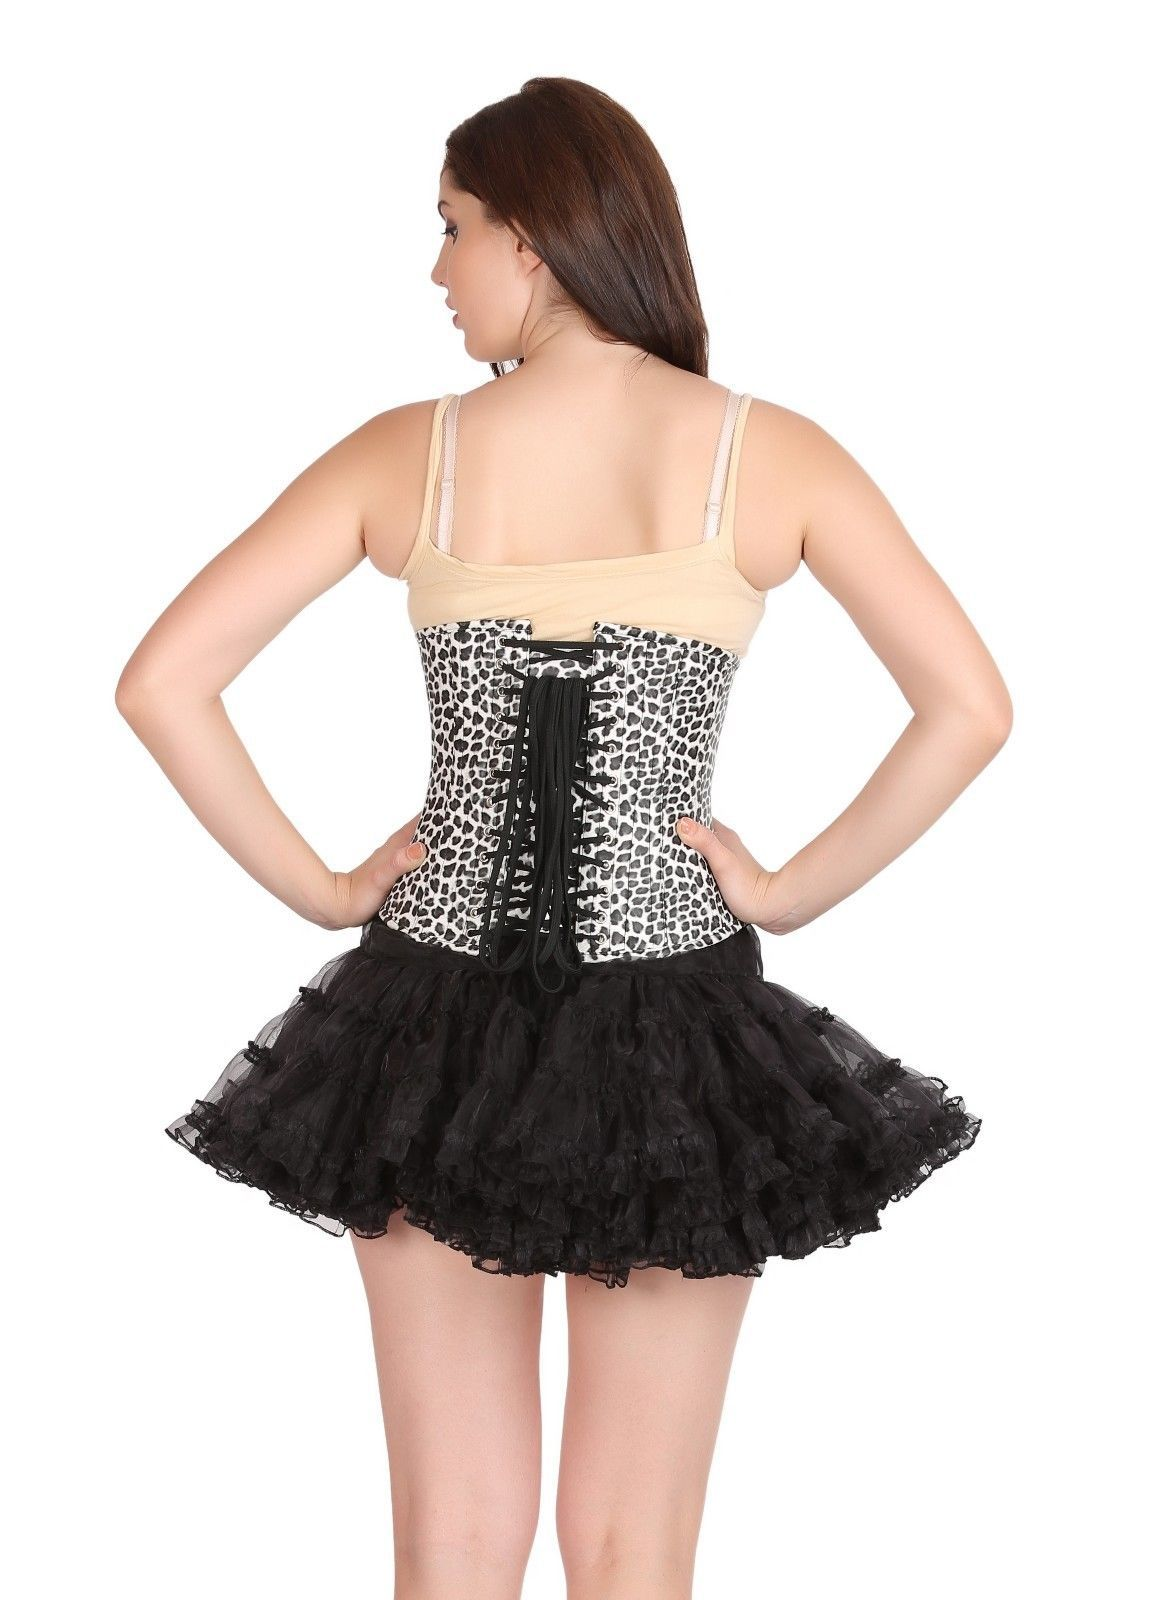 Black & White Faux Leather Animal Gothic Steampunk Bustier Underbust Corset Top